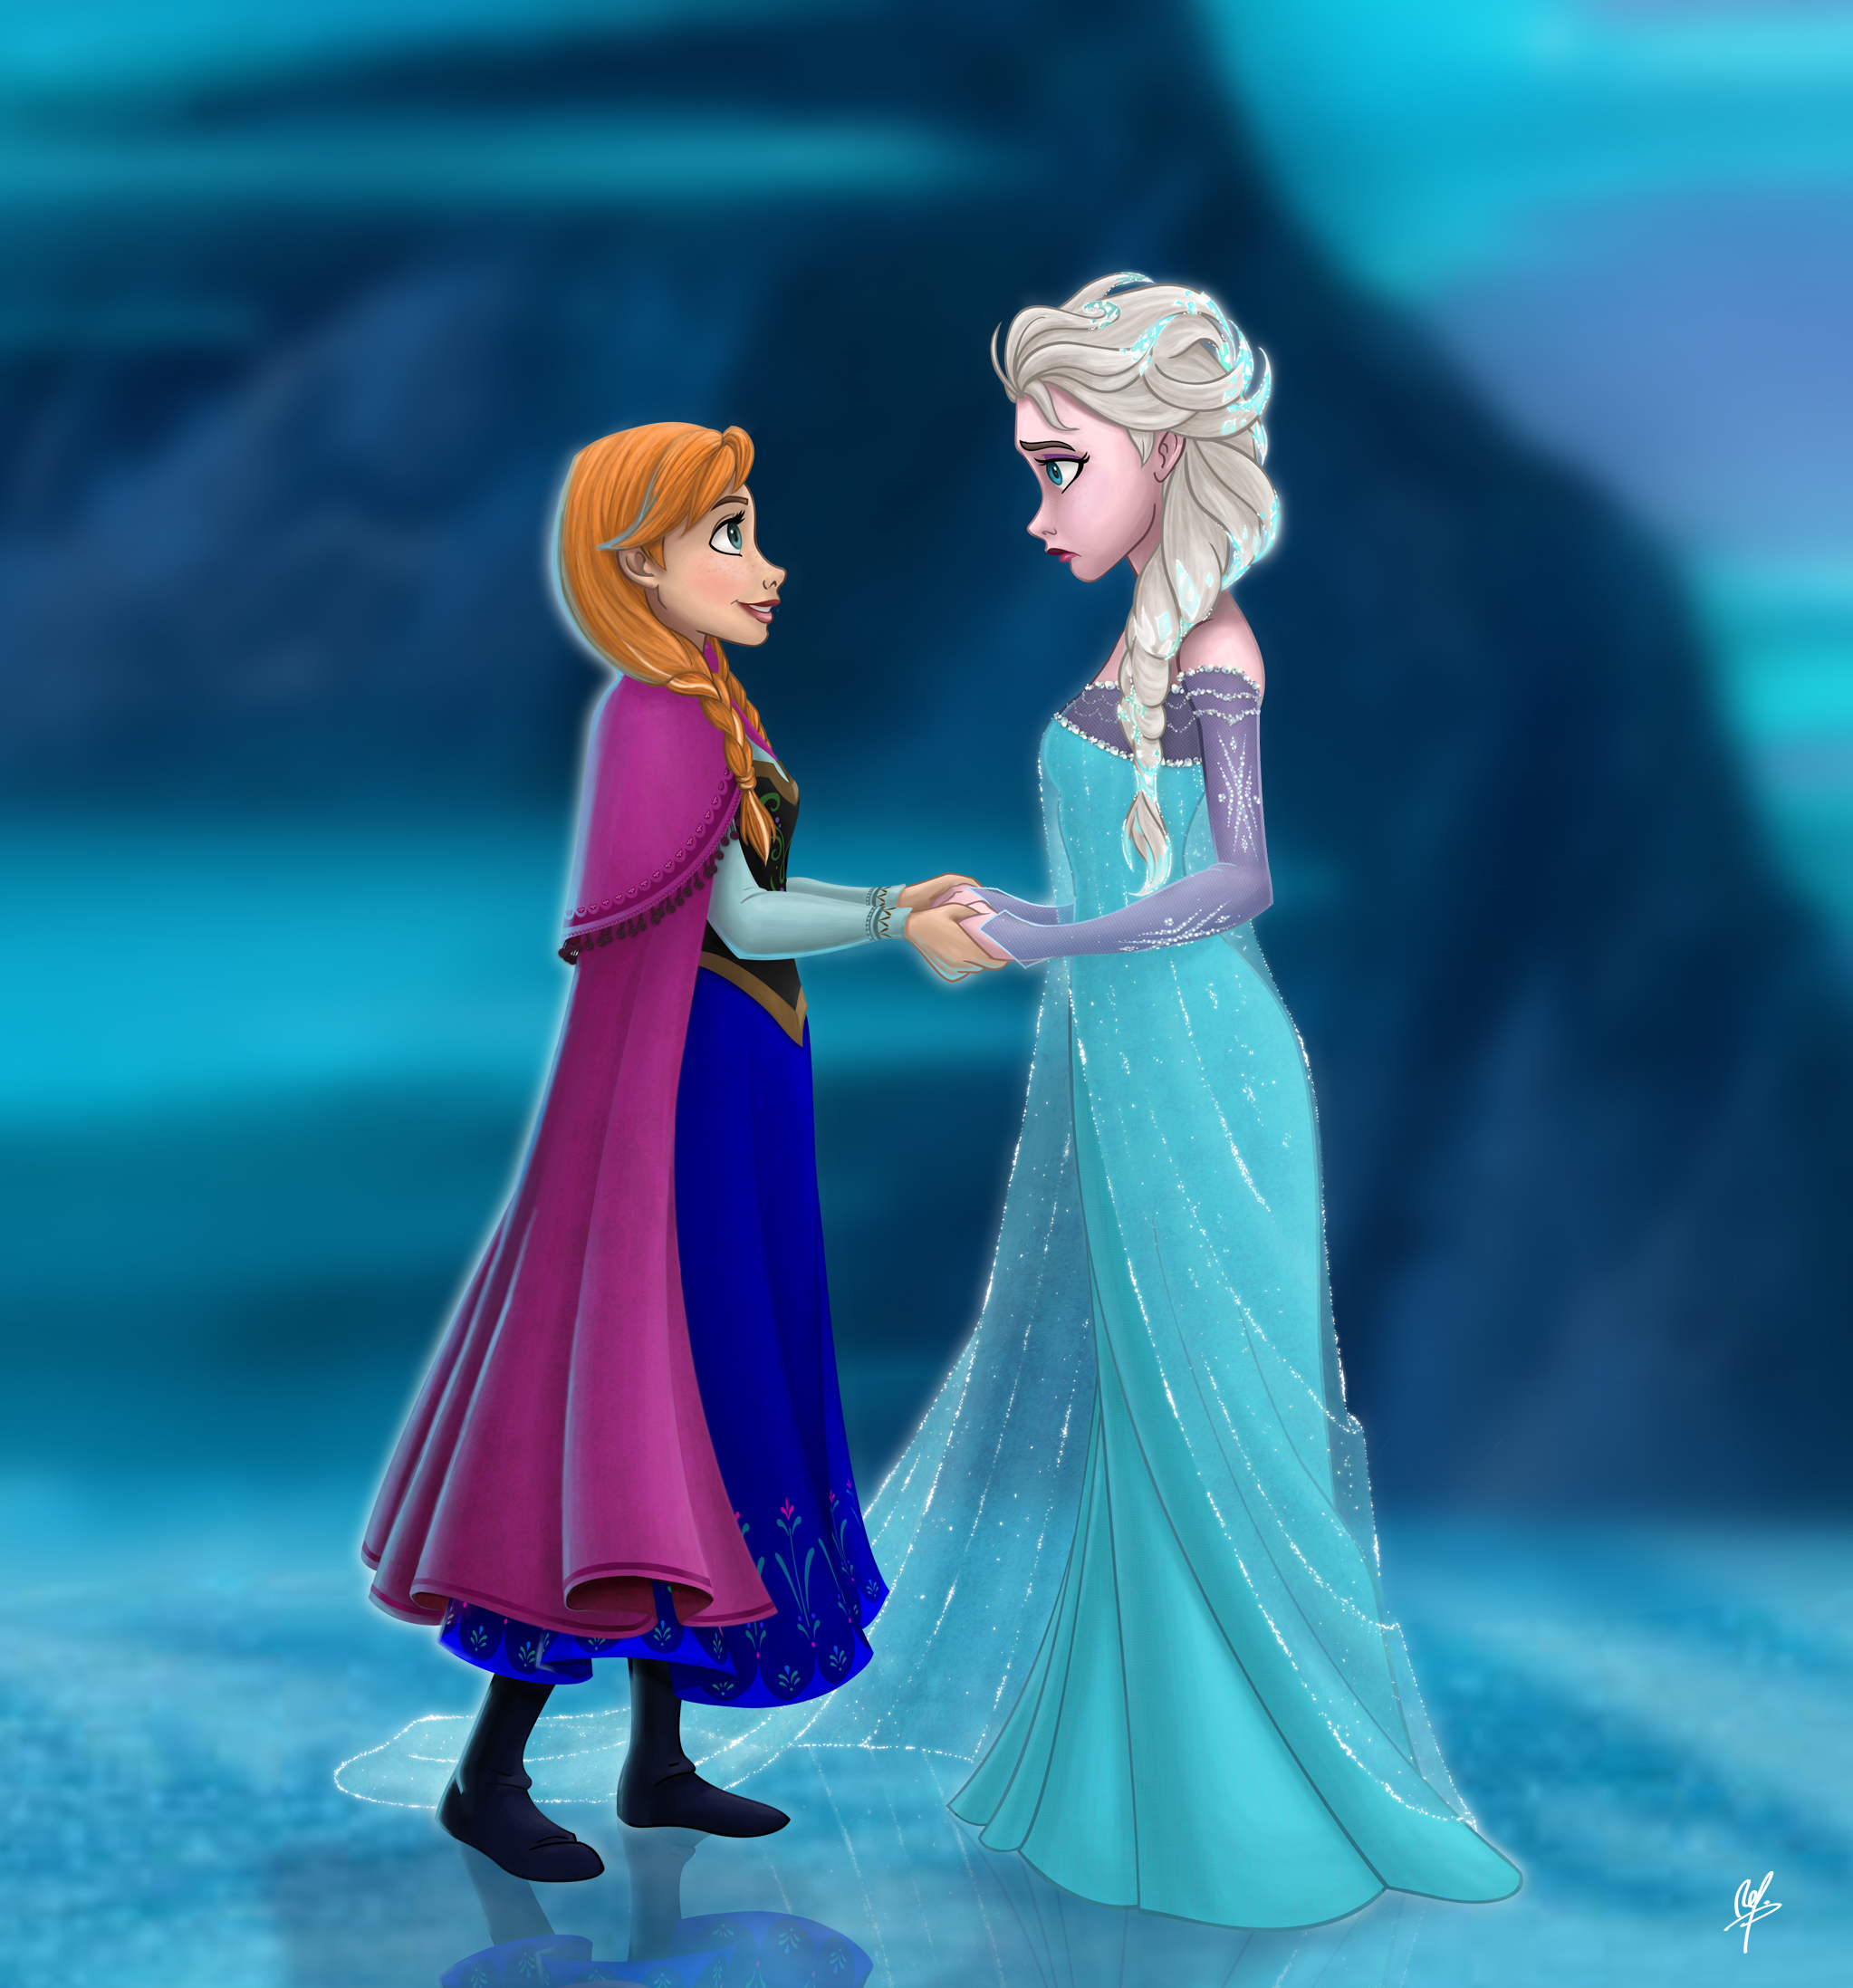 Anna and elsa princess anna fan art 34964312 fanpop - Princesse anna et elsa ...